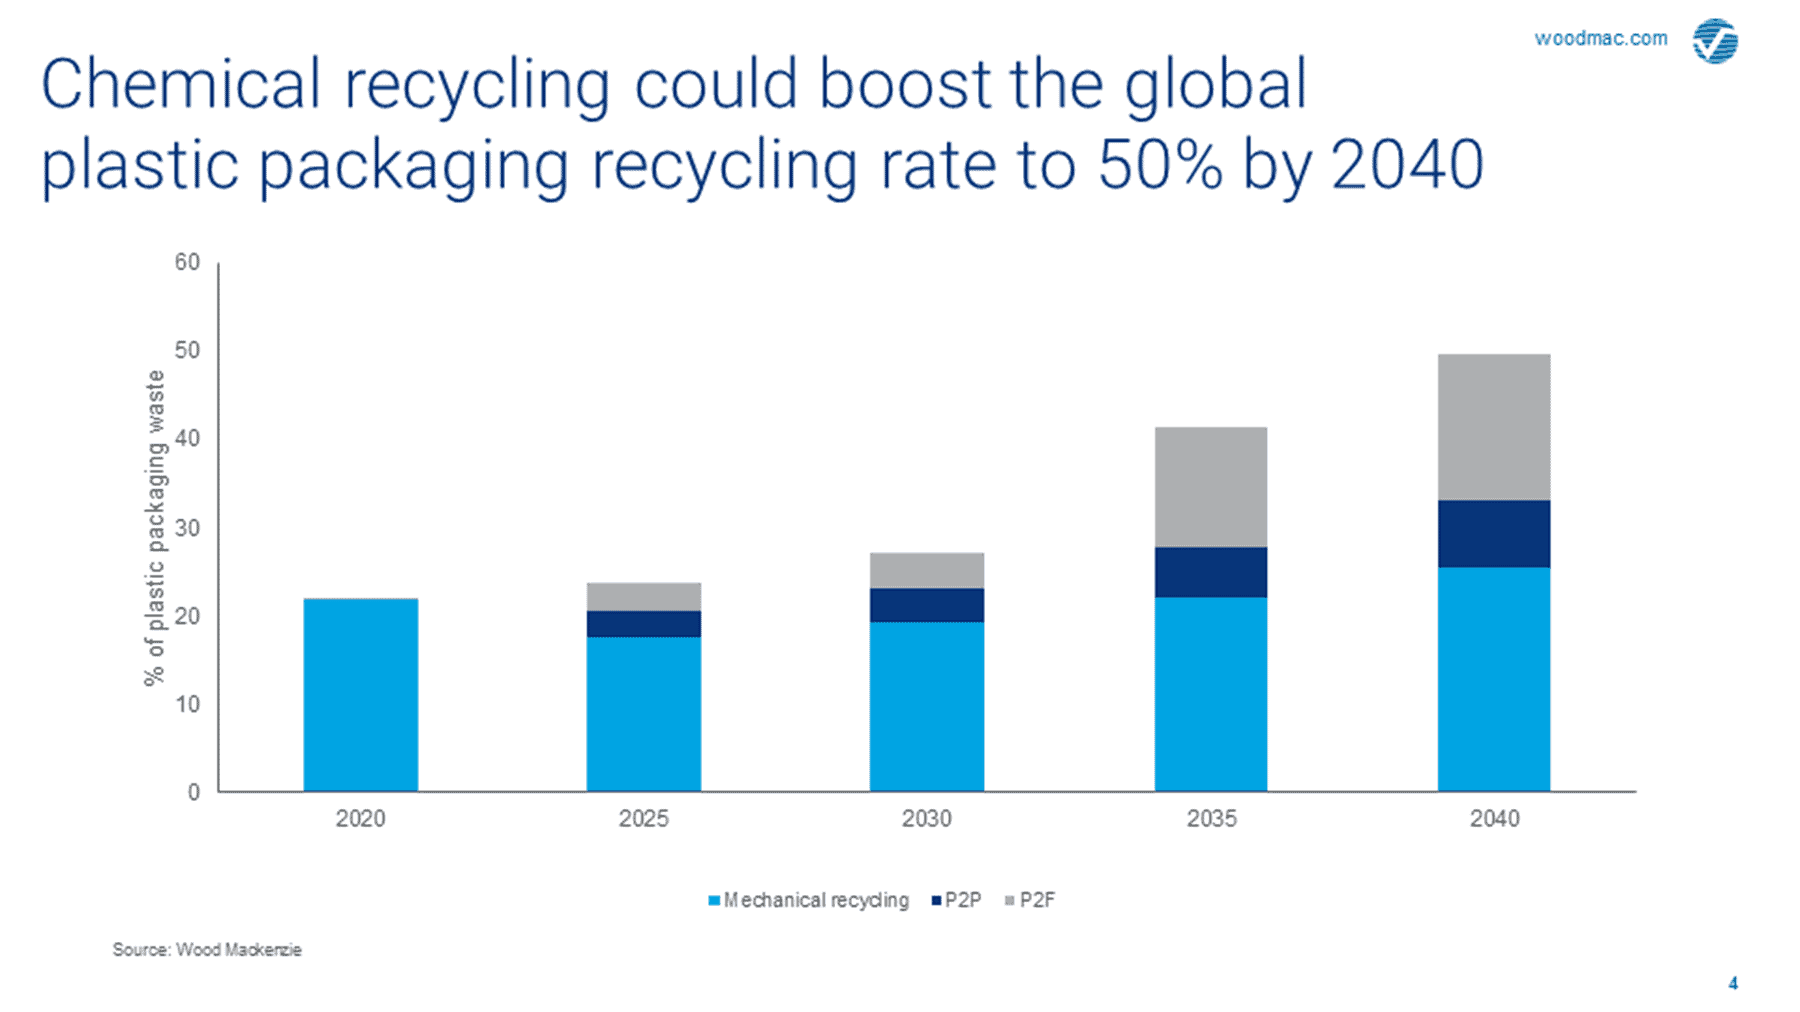 Chemical recycling could boost the global plastic packaging recycling rate to 50% by 2040